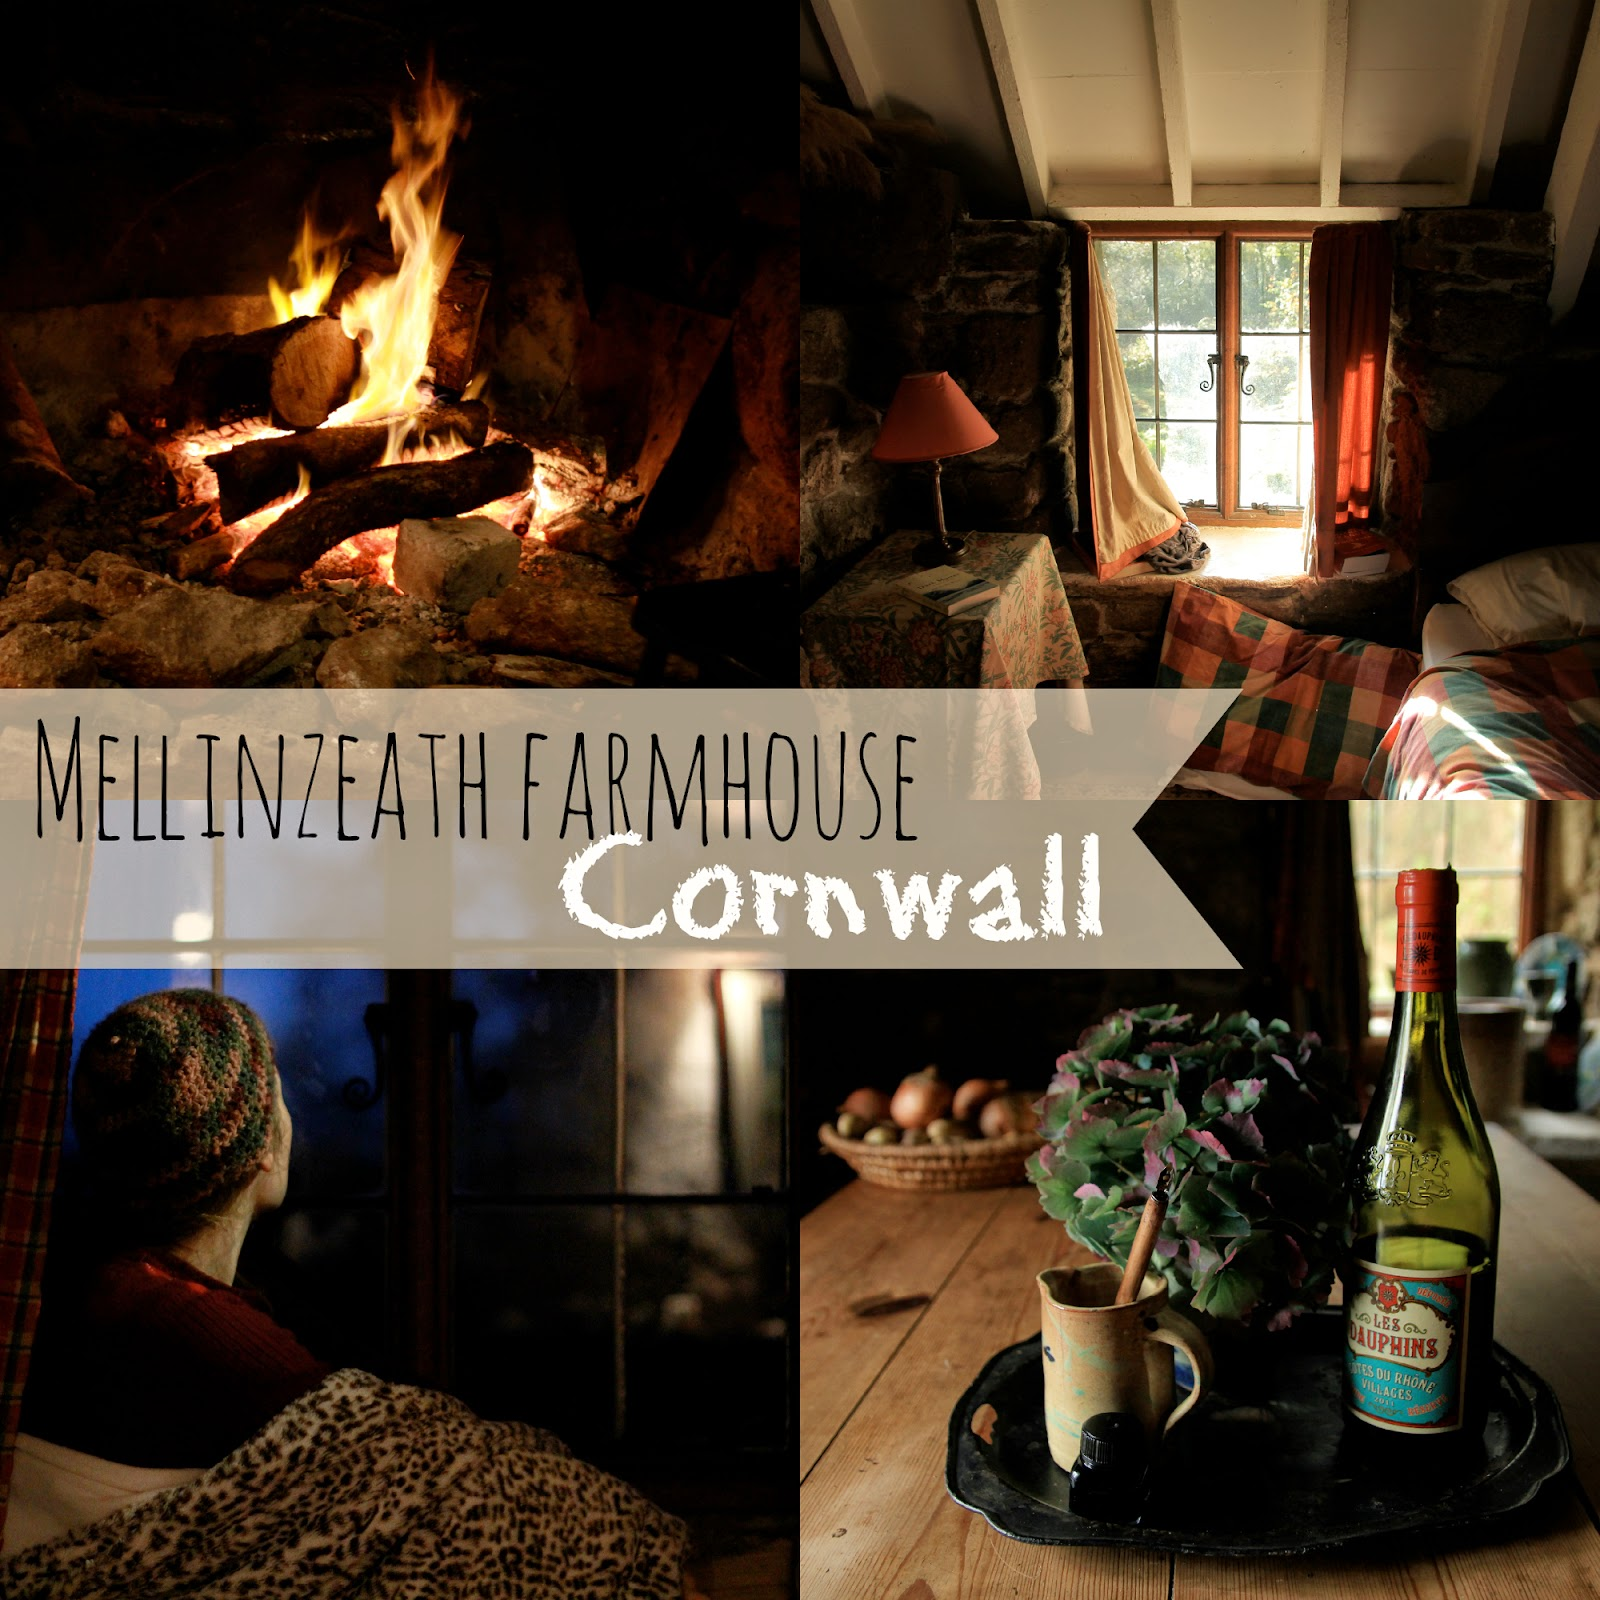 Rustic cottage in Cornwall - Review of Mellinzeath Farmhouse, Helford